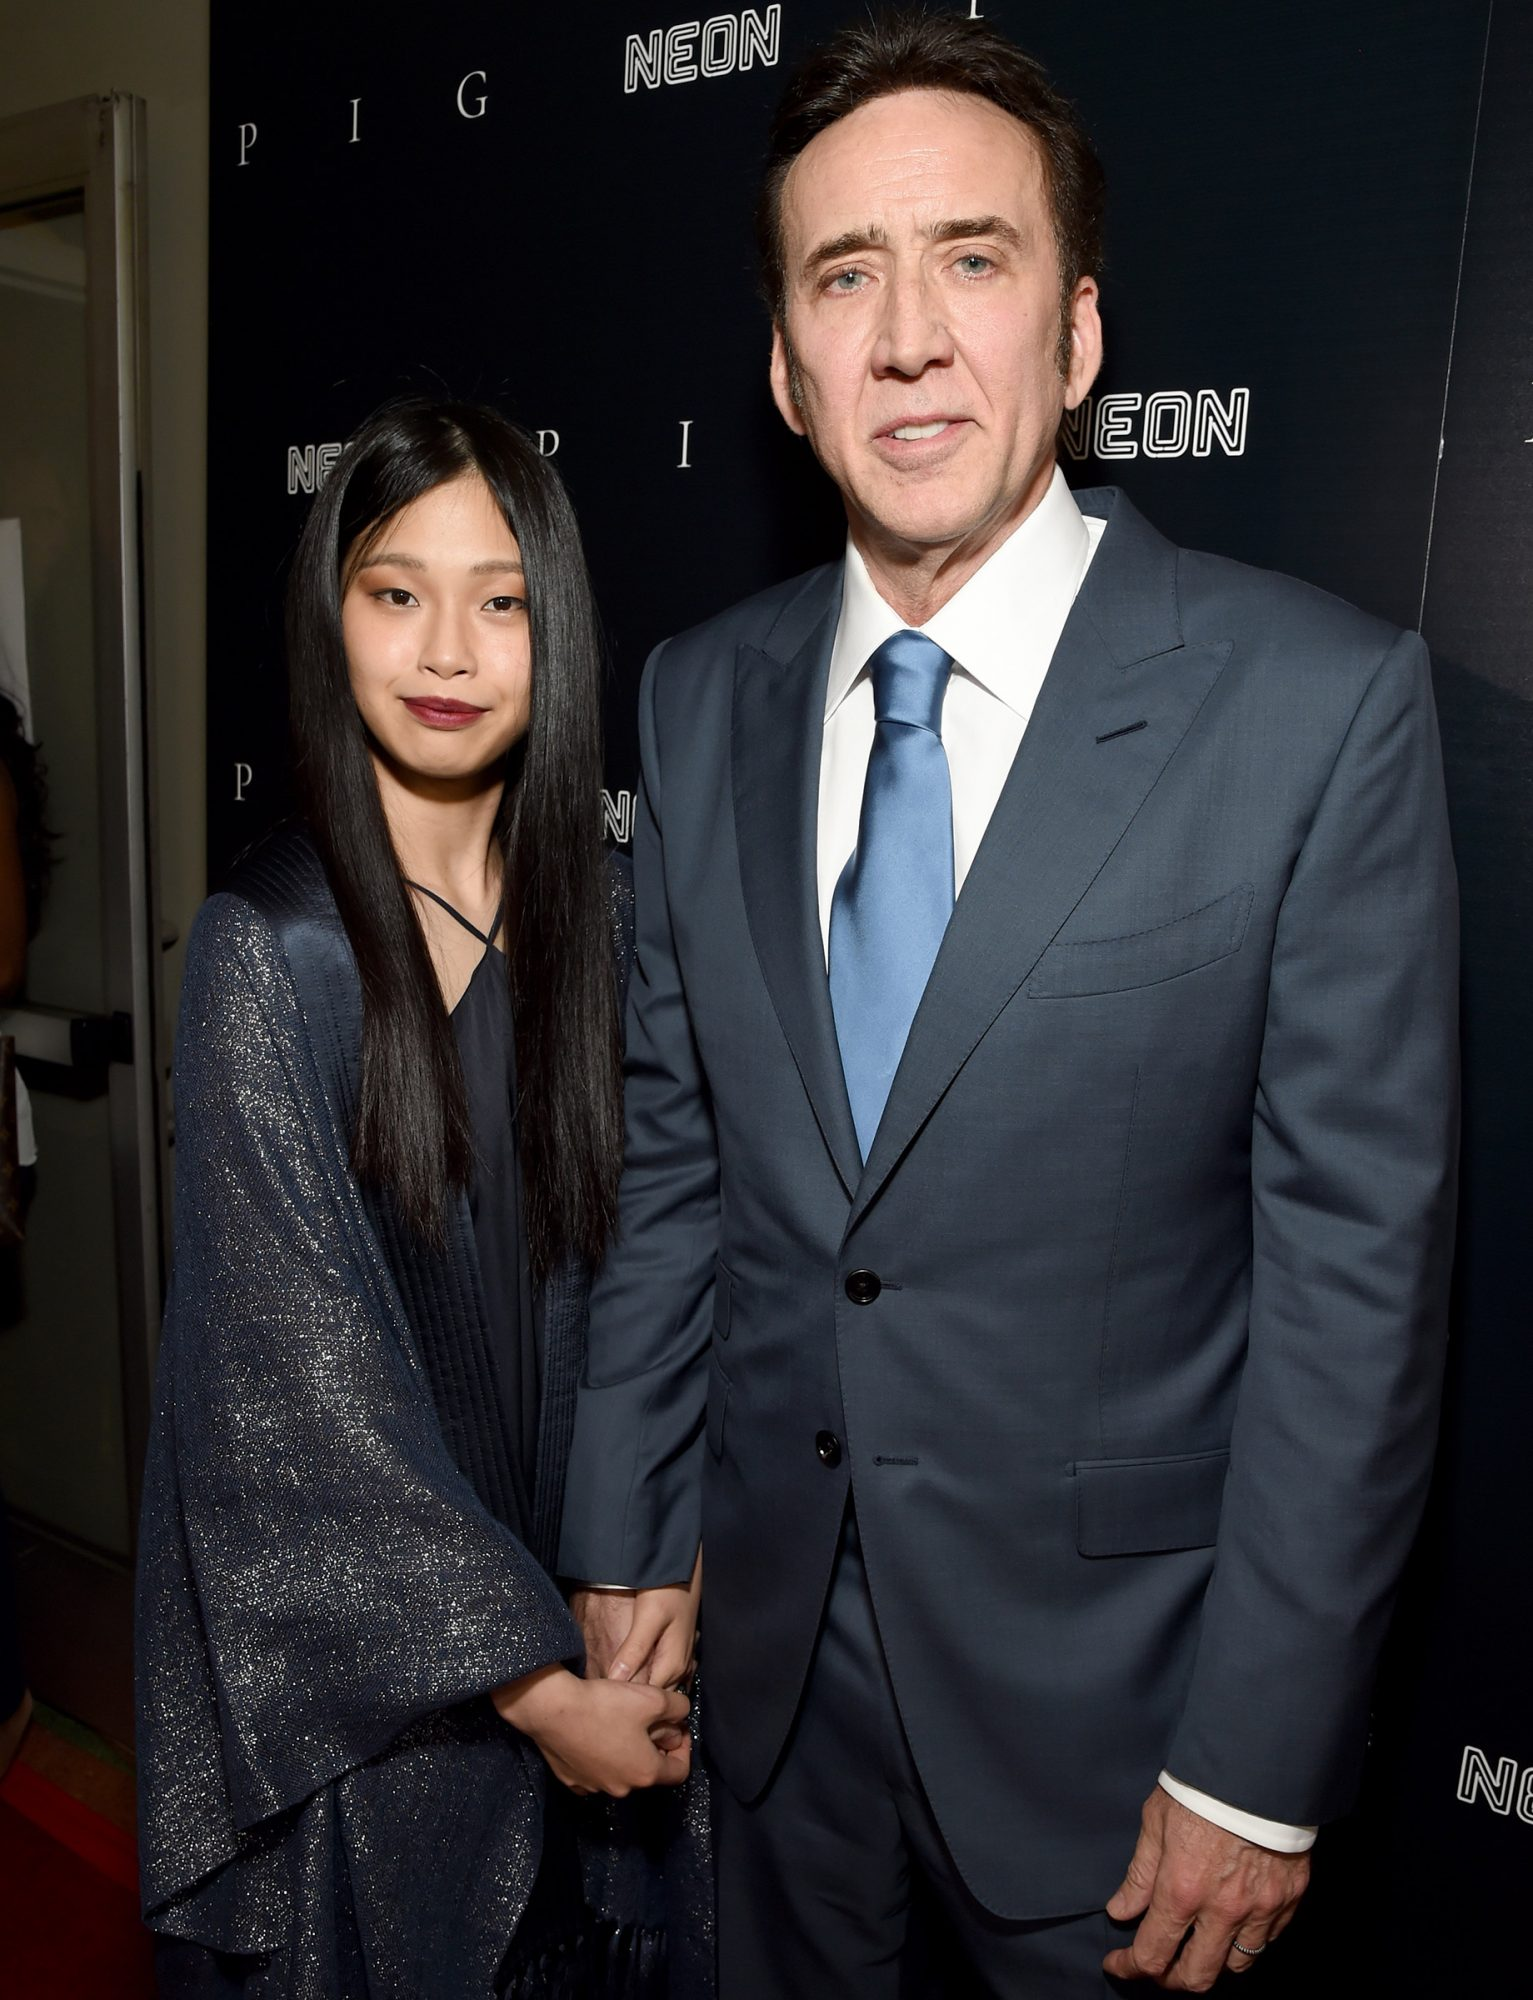 """Riko Shibata, left, and Nicolas Cage arrive at the Los Angeles premiere of """"Pig"""", at the Nuart Theatre"""